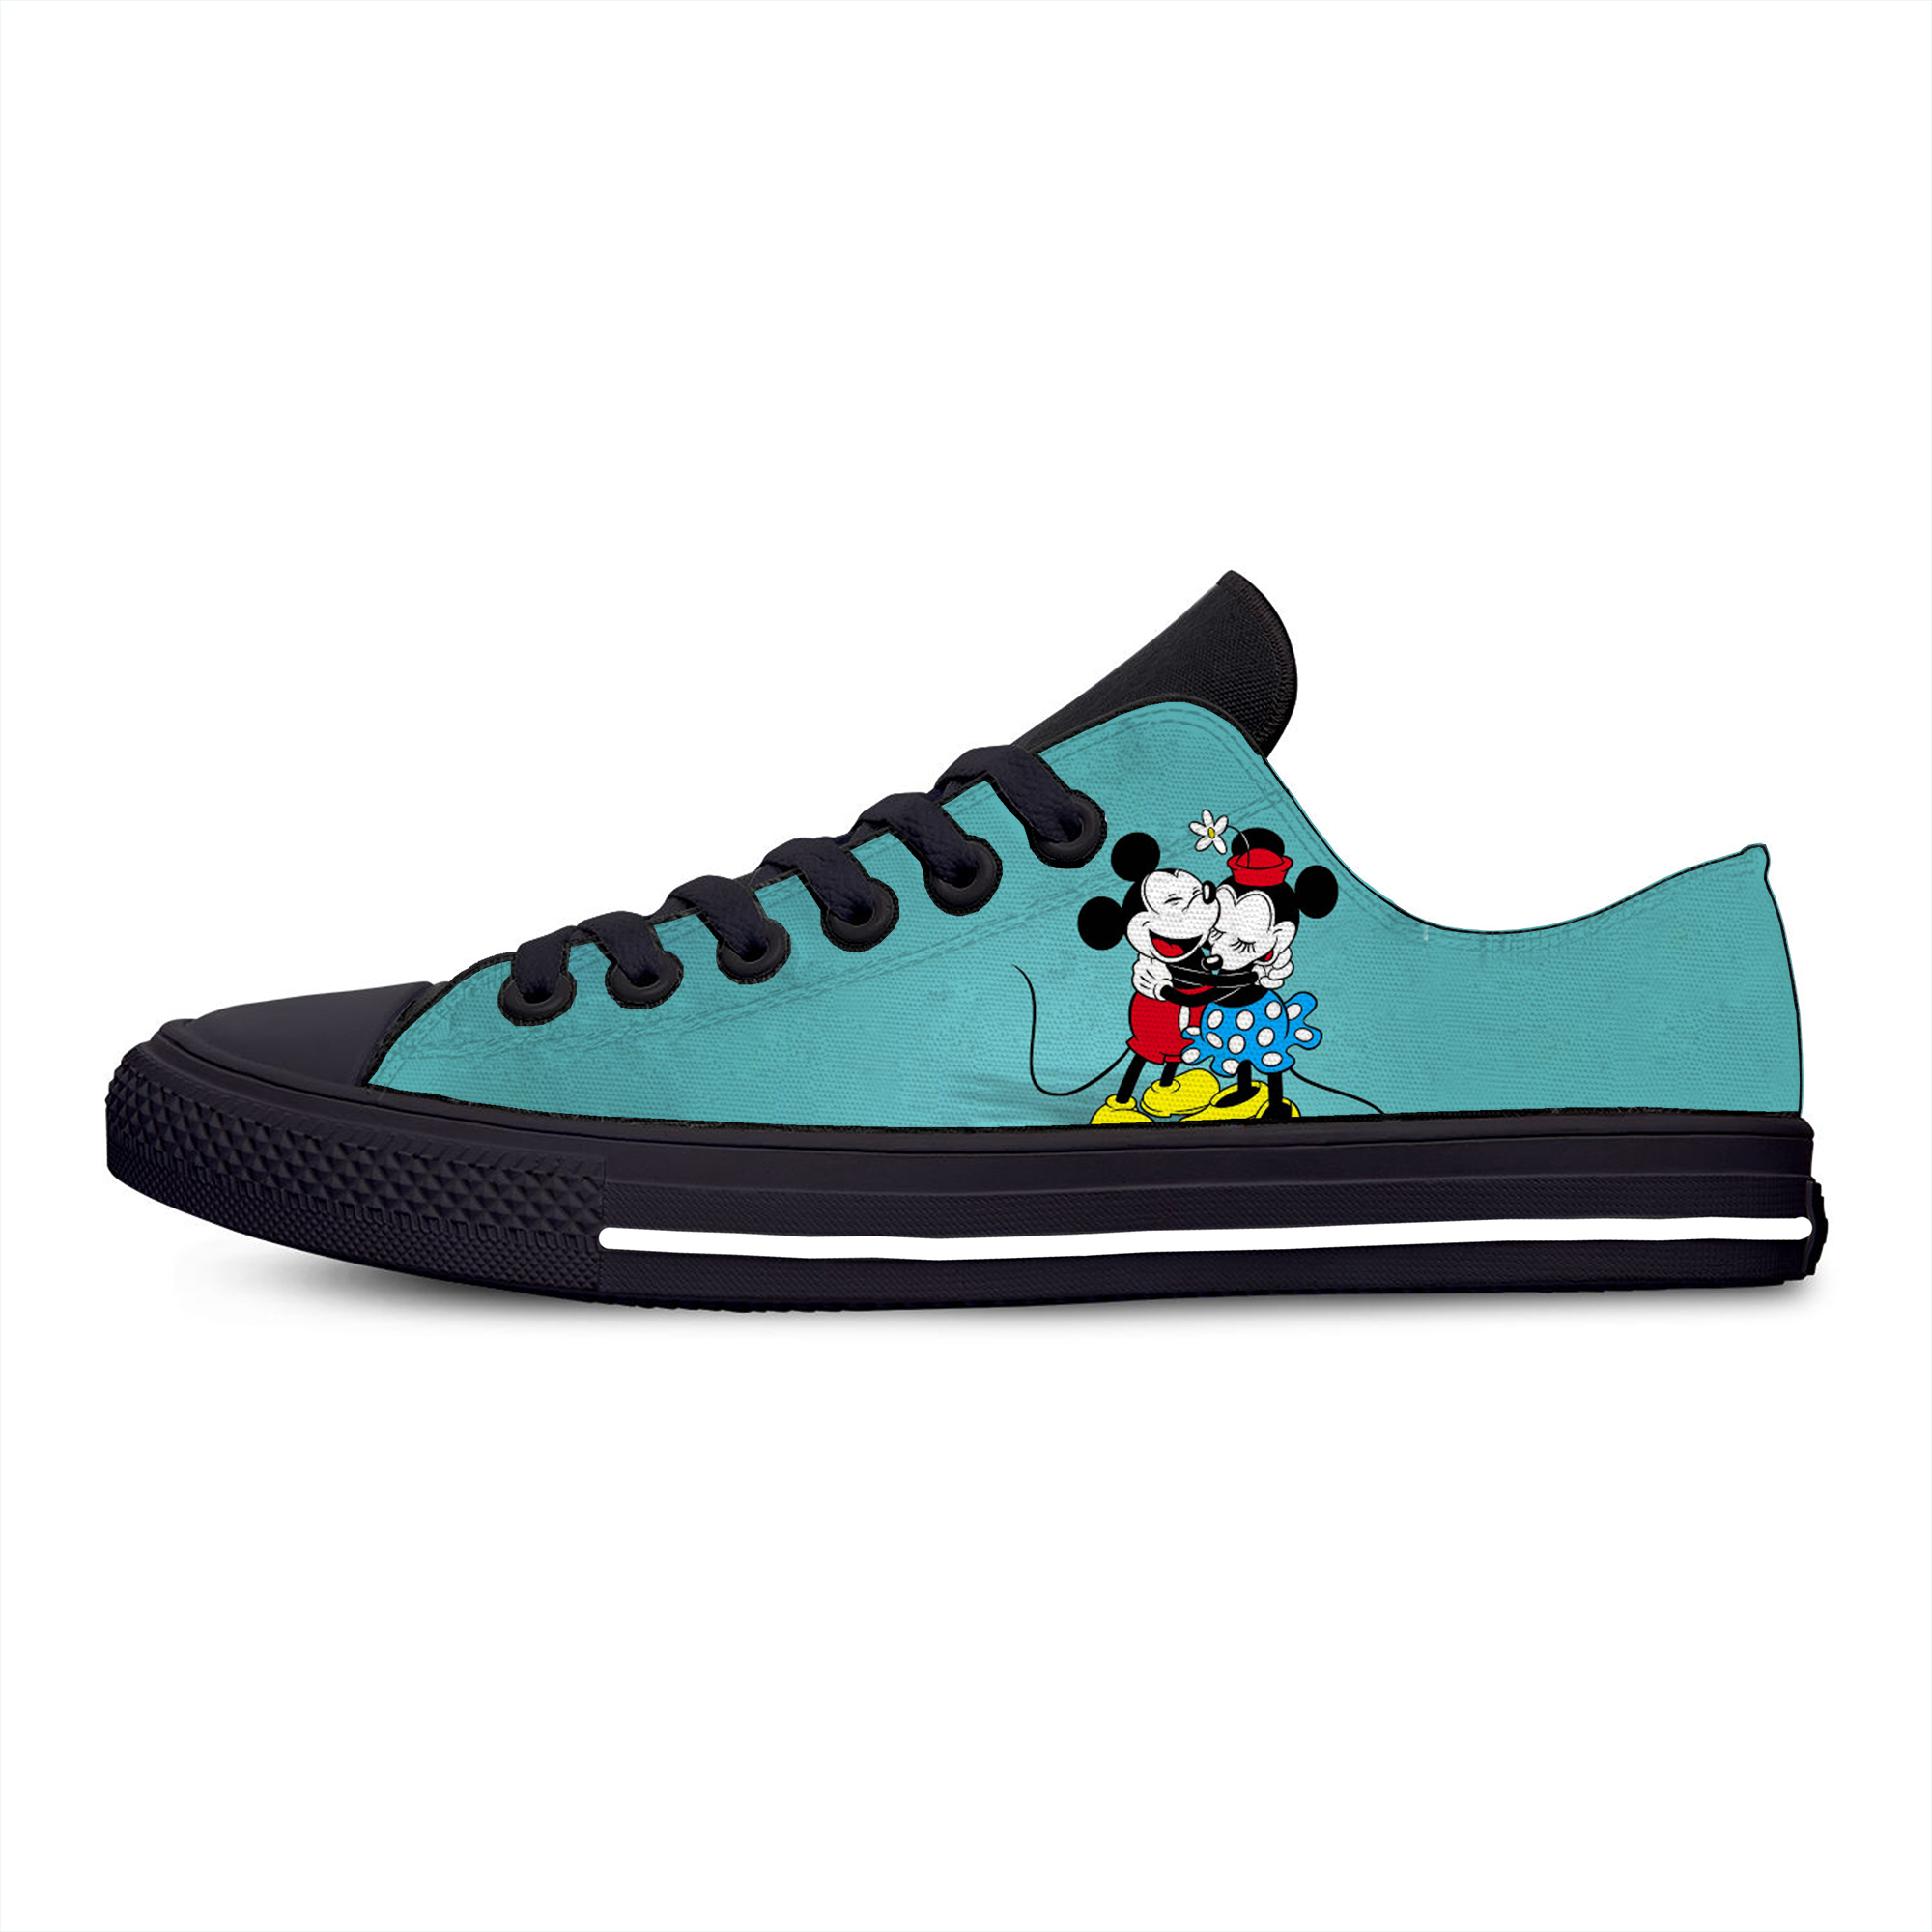 Cartoon Mouse Hot Mickey Minnie Funny Fashion Casual Canvas Shoes Low Top Lightweight Breathable 3D Printed Men Women Sneakers